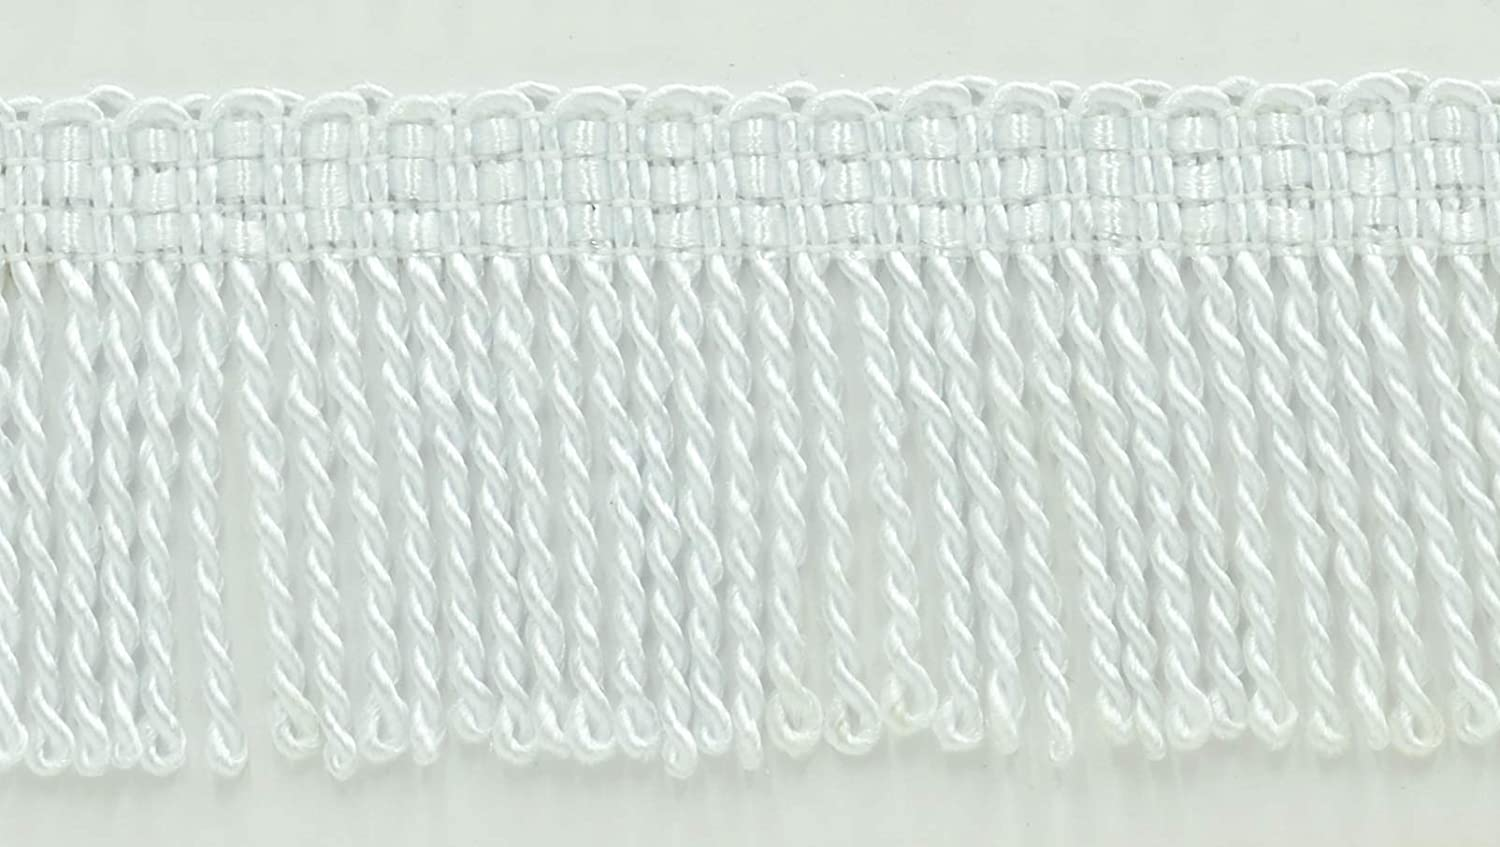 2 Inch Long White Thin Bullion Fringe Trim 30 Ft // 9.1 Meters Style# BFT2 Color: A1 DecoPro 10 Yard Value Pack